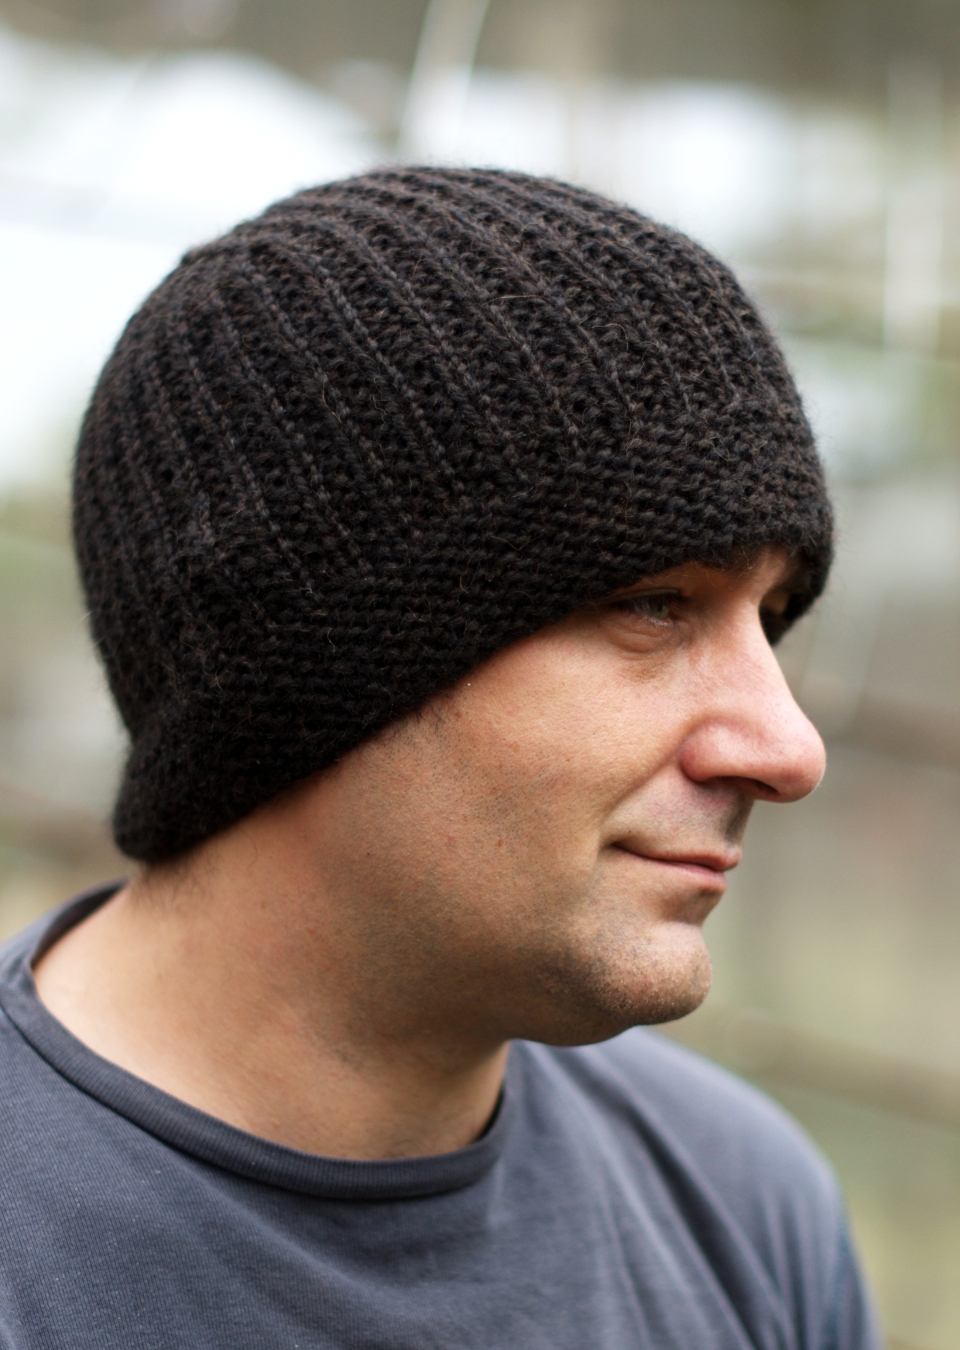 You searched for: mens hat knit beanie! Etsy is the home to thousands of handmade, vintage, and one-of-a-kind products and gifts related to your search. No matter what you're looking for or where you are in the world, our global marketplace of sellers can help you .